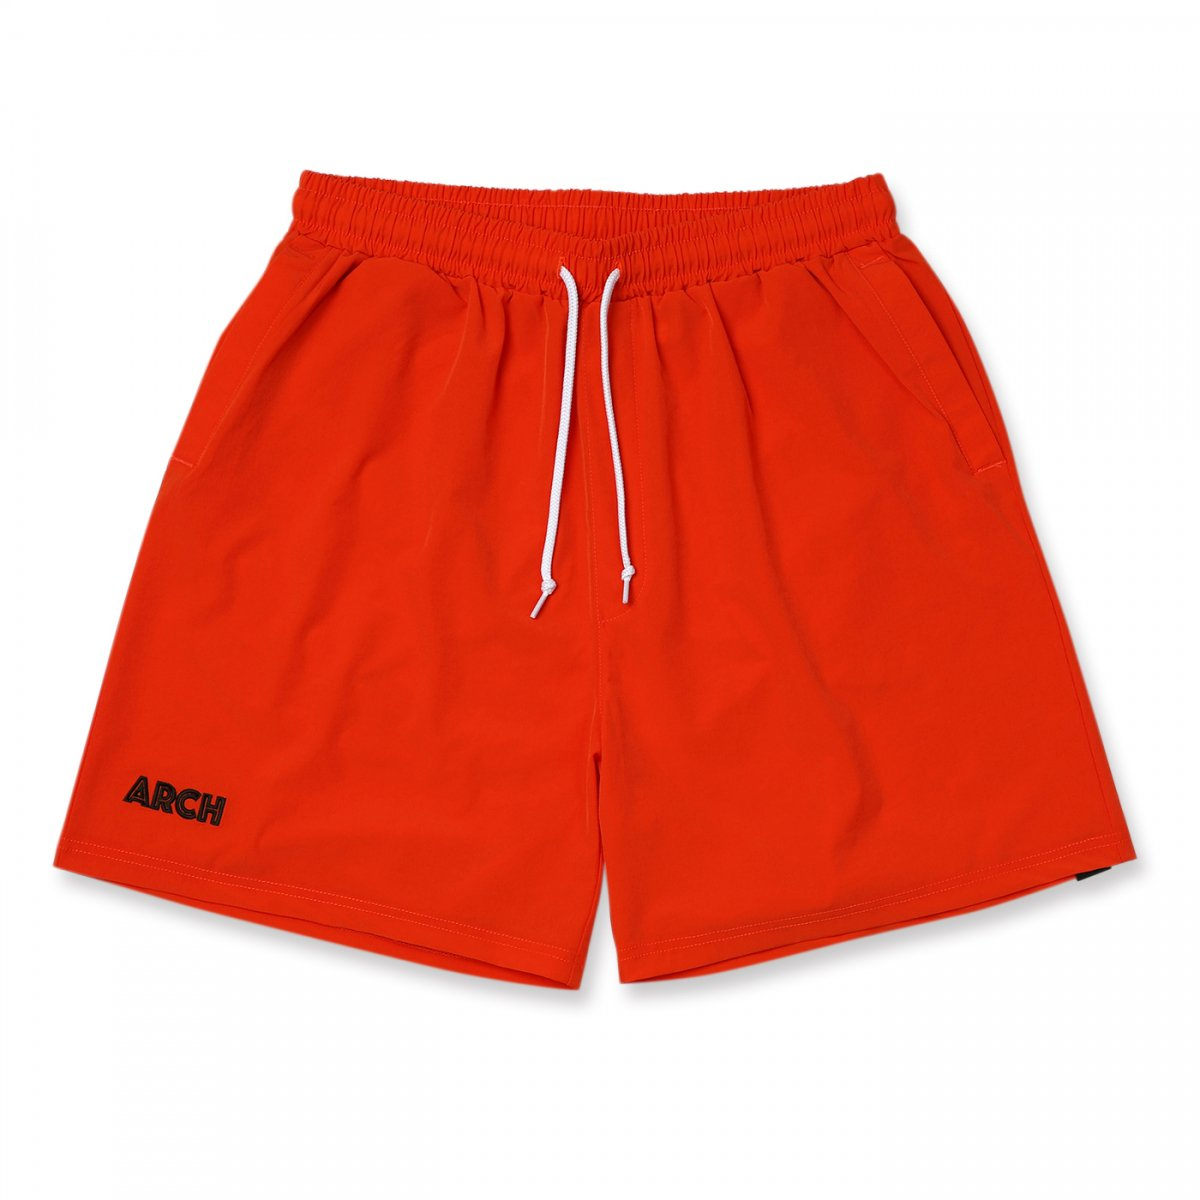 stretch nylon short pants 【vermillion】